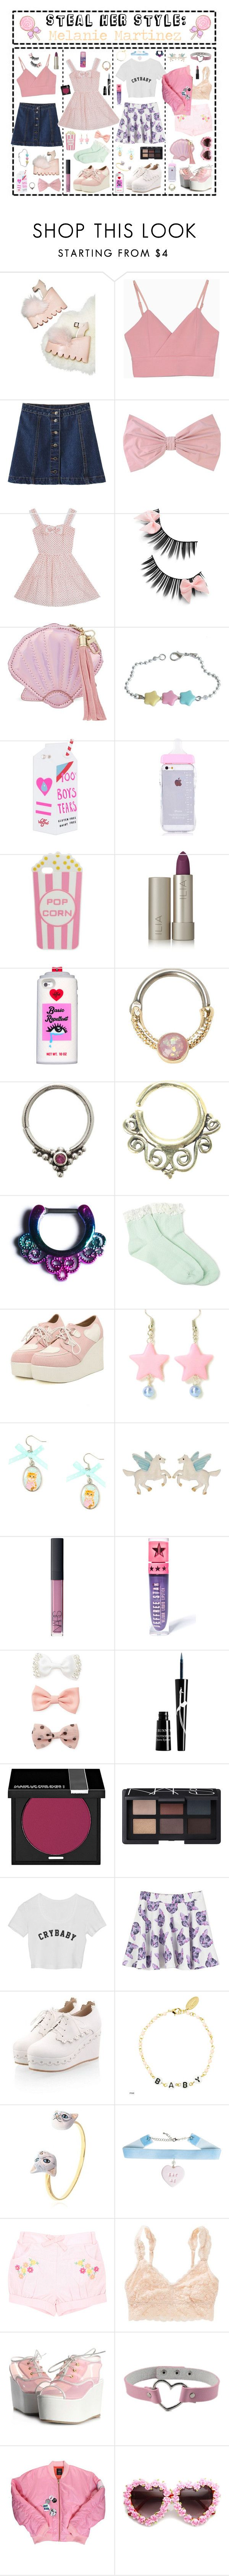 """""""- ̗̀ Steal Her Style: Melanie Martinez  ̖́-"""" by i-get-a-little-bit-breathless ❤ liked on Polyvore featuring Current Mood, PINK BOW, Skinnydip, Valfré, Ilia, Halftone Bodyworks, Forever 21, NARS Cosmetics, Jeffree Star and Rouge Bunny Rouge"""